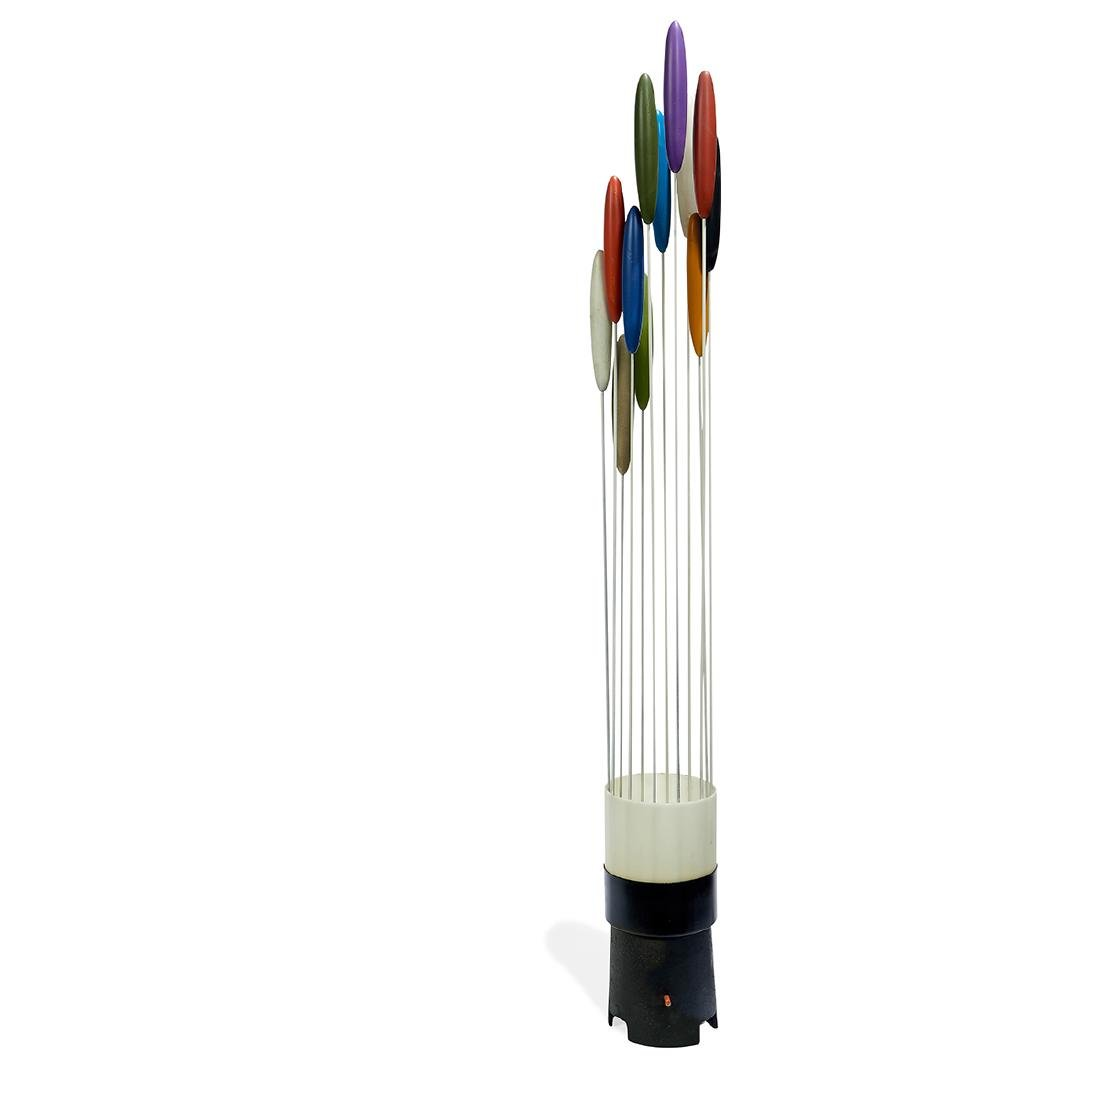 Bill Curry for Design Line 'Catailite' lamp (Cattail) - 2